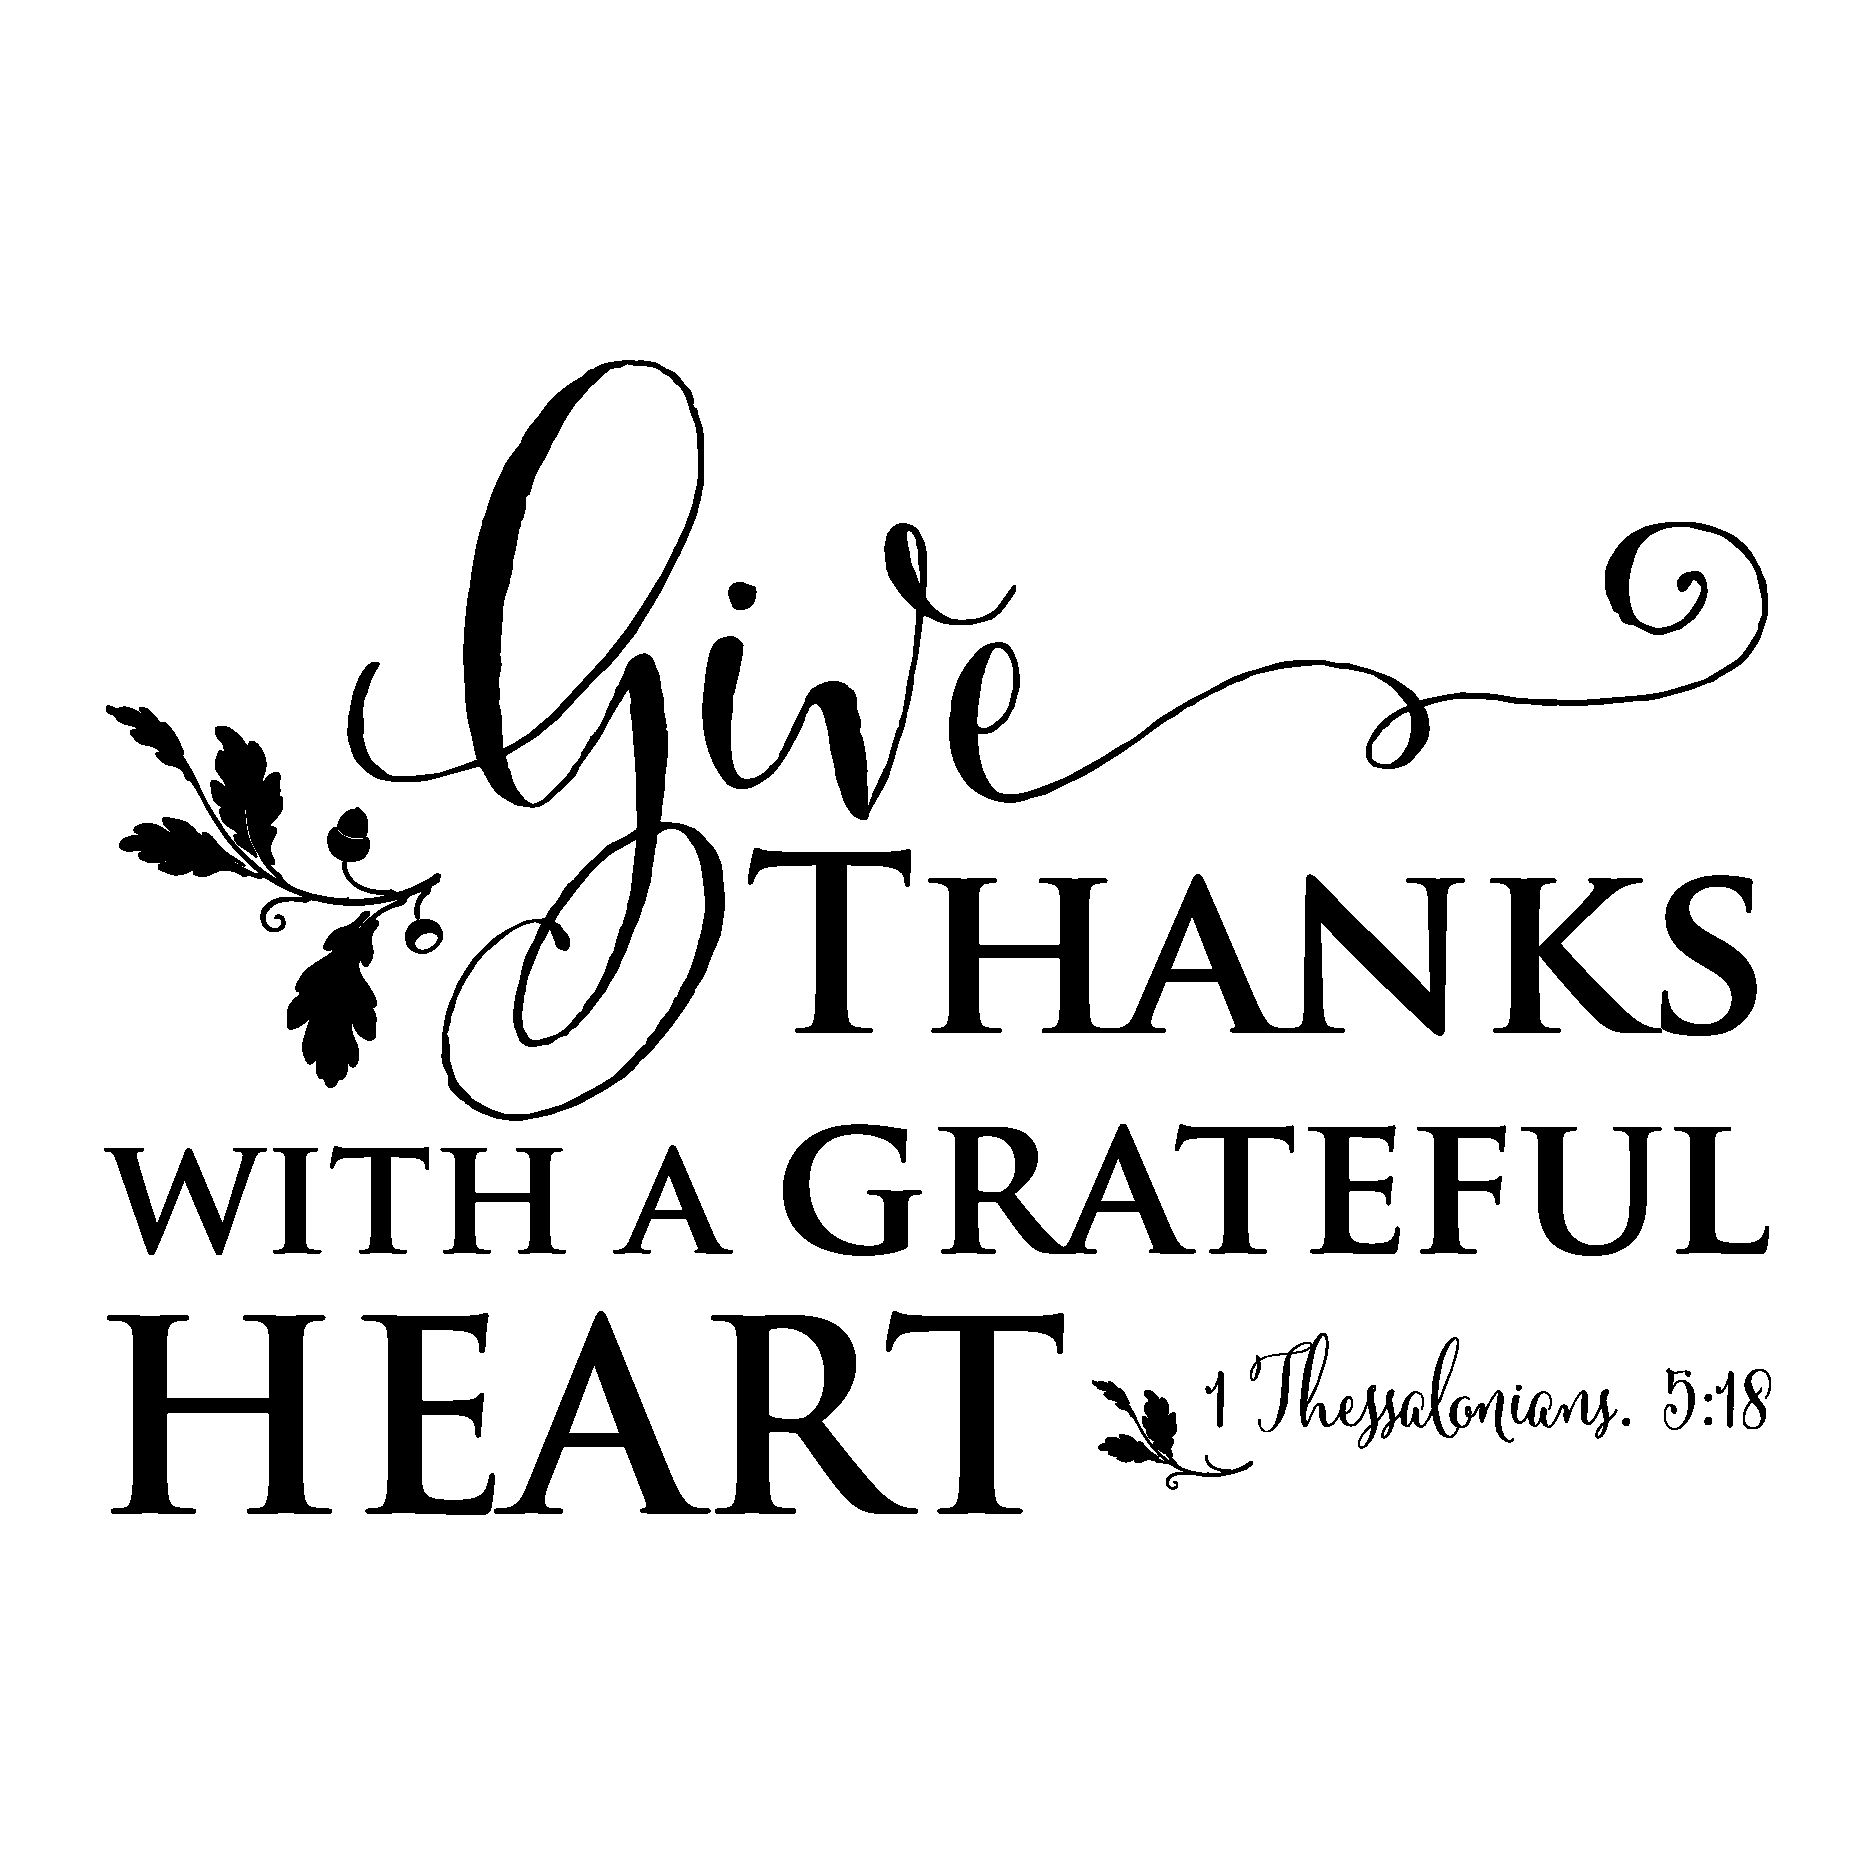 Thanksgiving quote clipart graphic free library give thanks with a grateful heart religious decal | crafts ... graphic free library